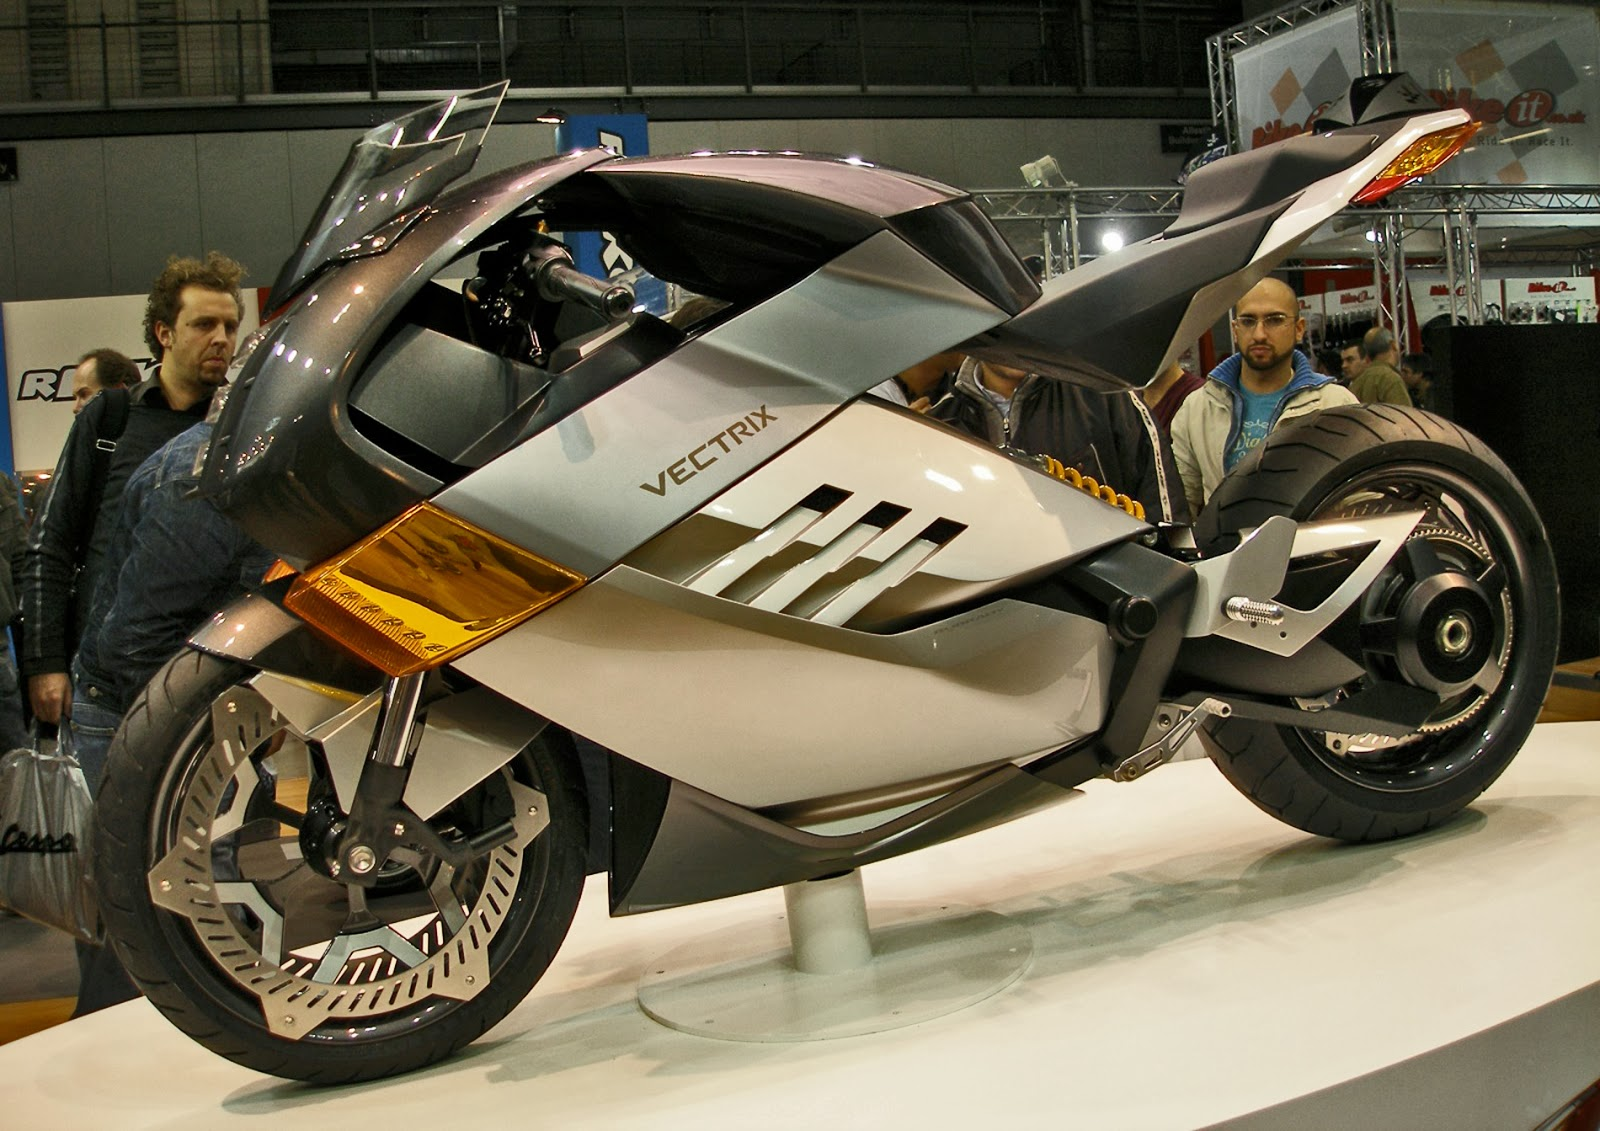 Vectrix superbike photo - 10